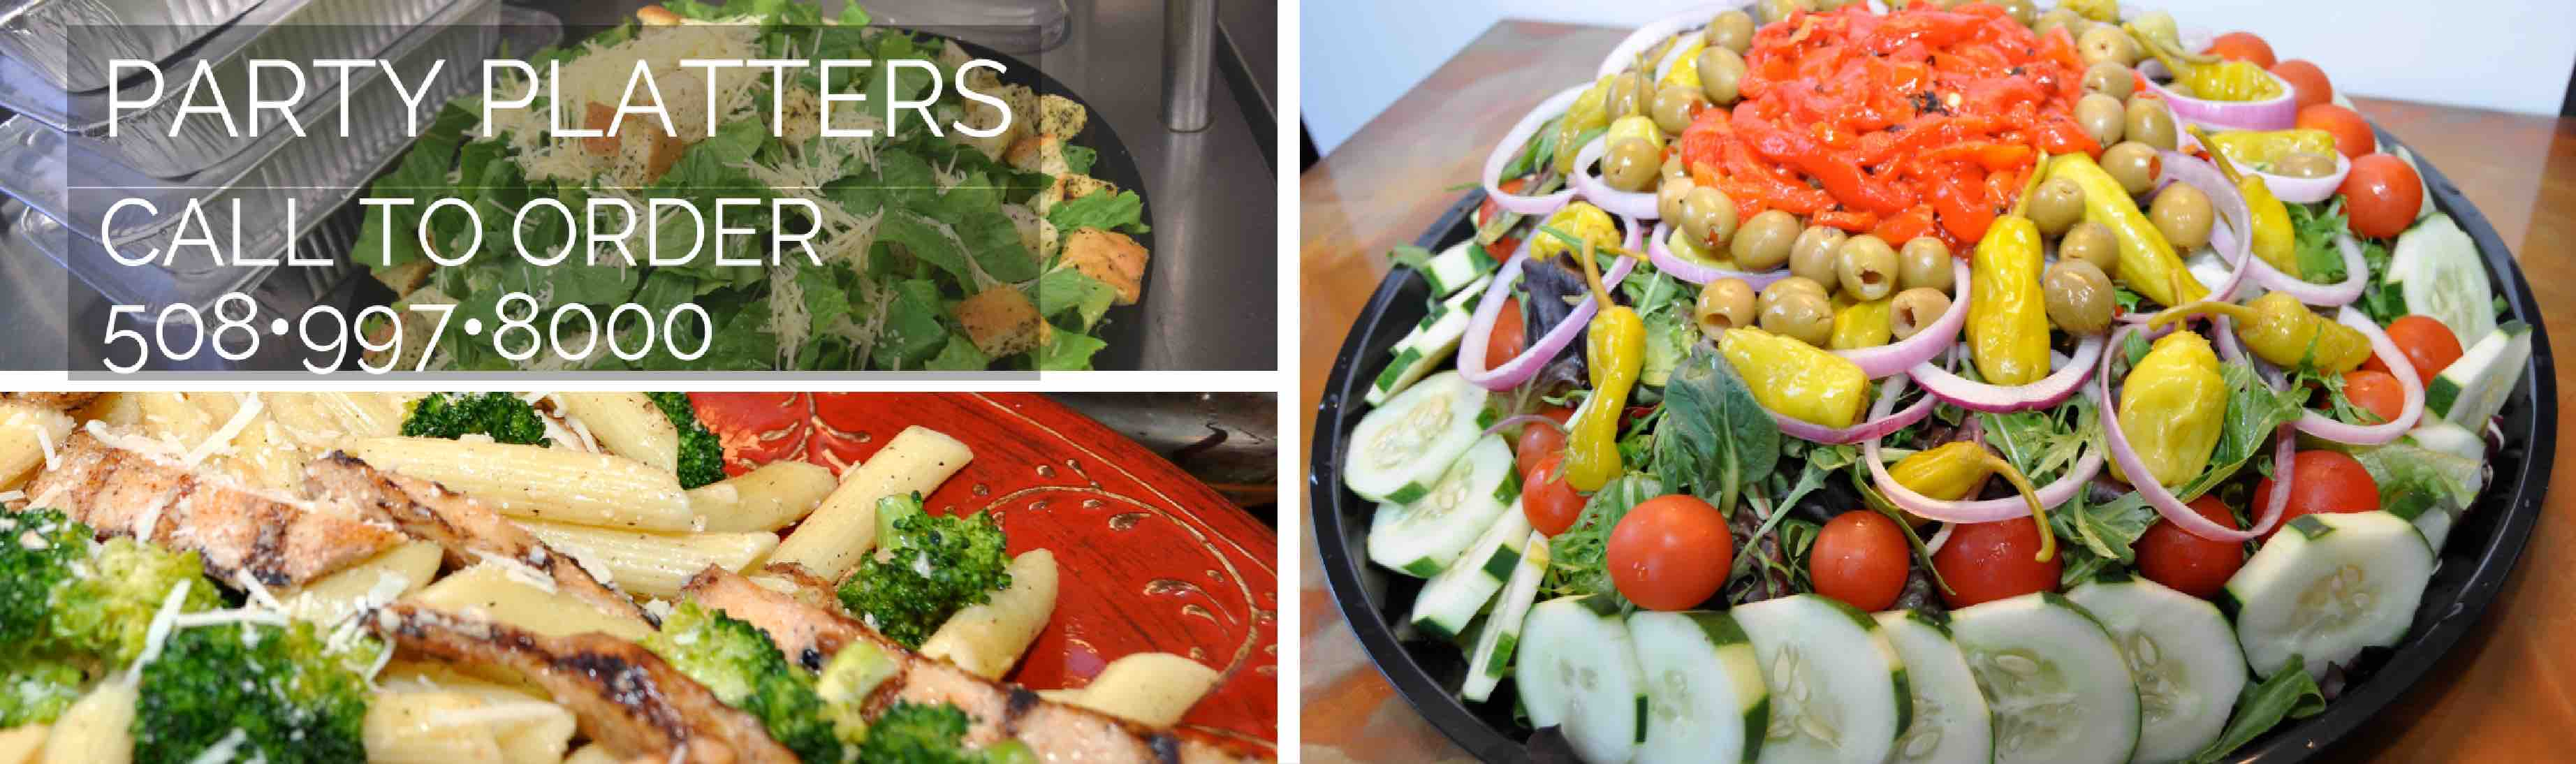 Party Platters - Order Now